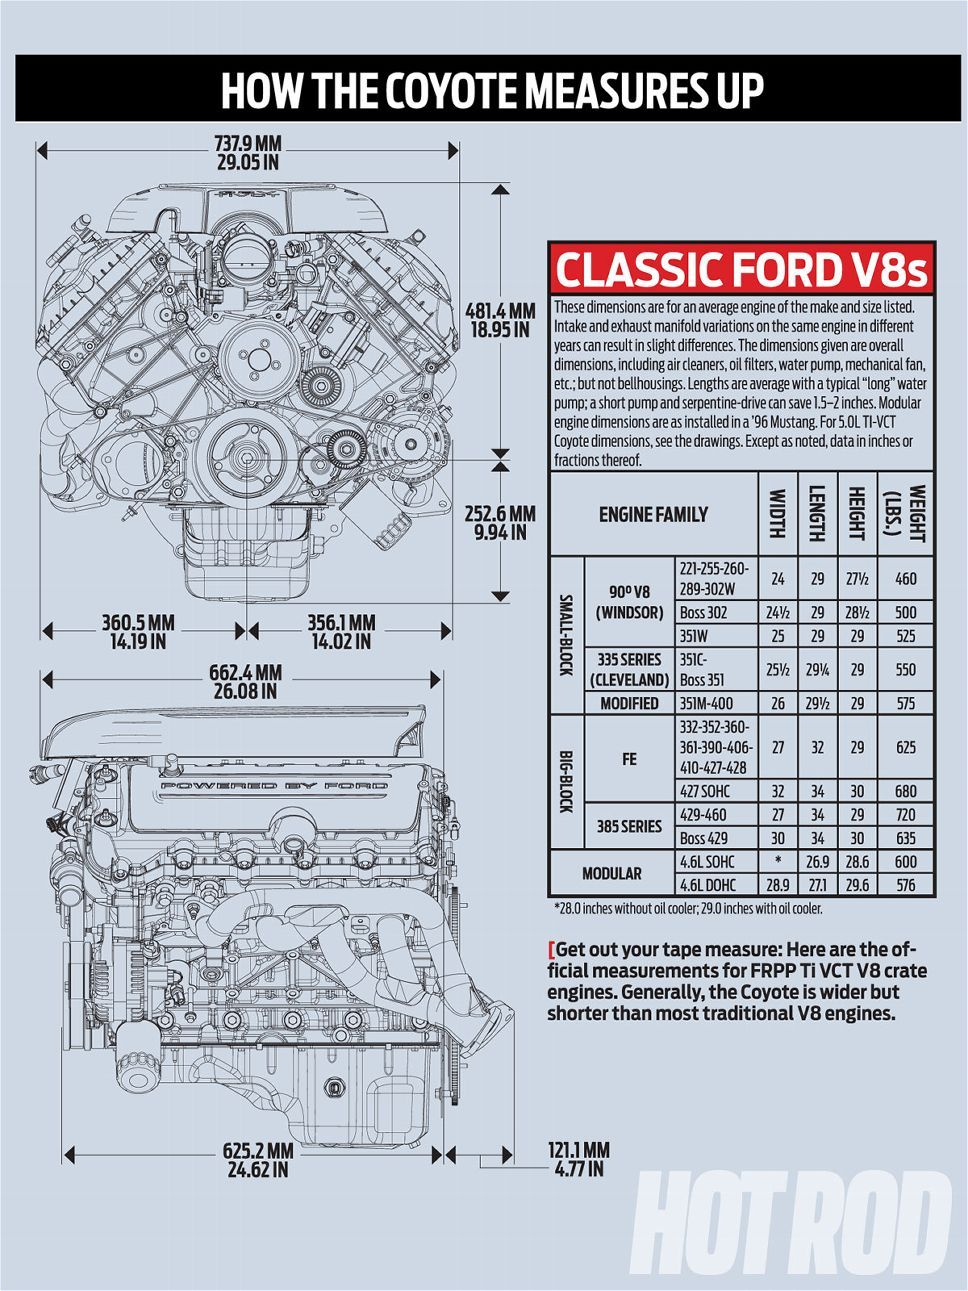 Ford Coyote Engine Swap Guide How The Measures Up Graph Photo Alpine Head Unit Wiring Diagram Http Wwwjkforumcom Jkelectrical 2